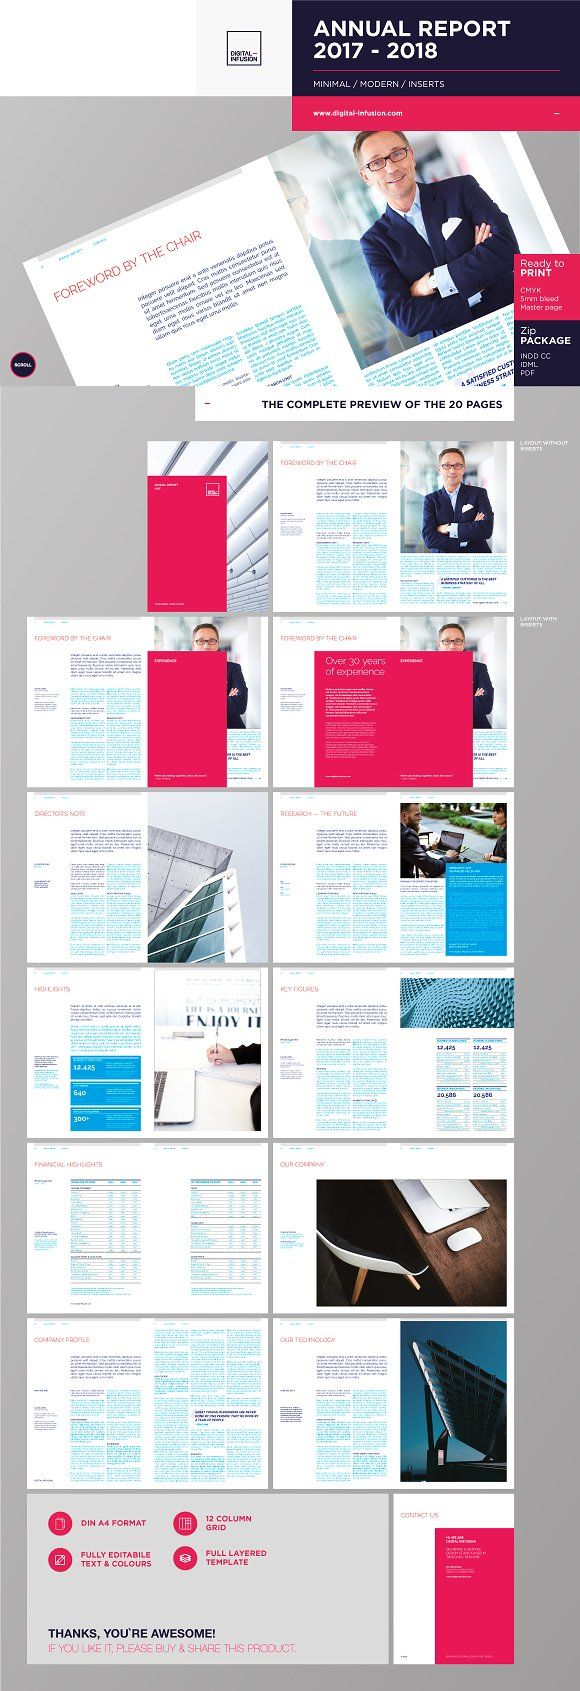 How To Get A Hard Copy Of An Annual Report